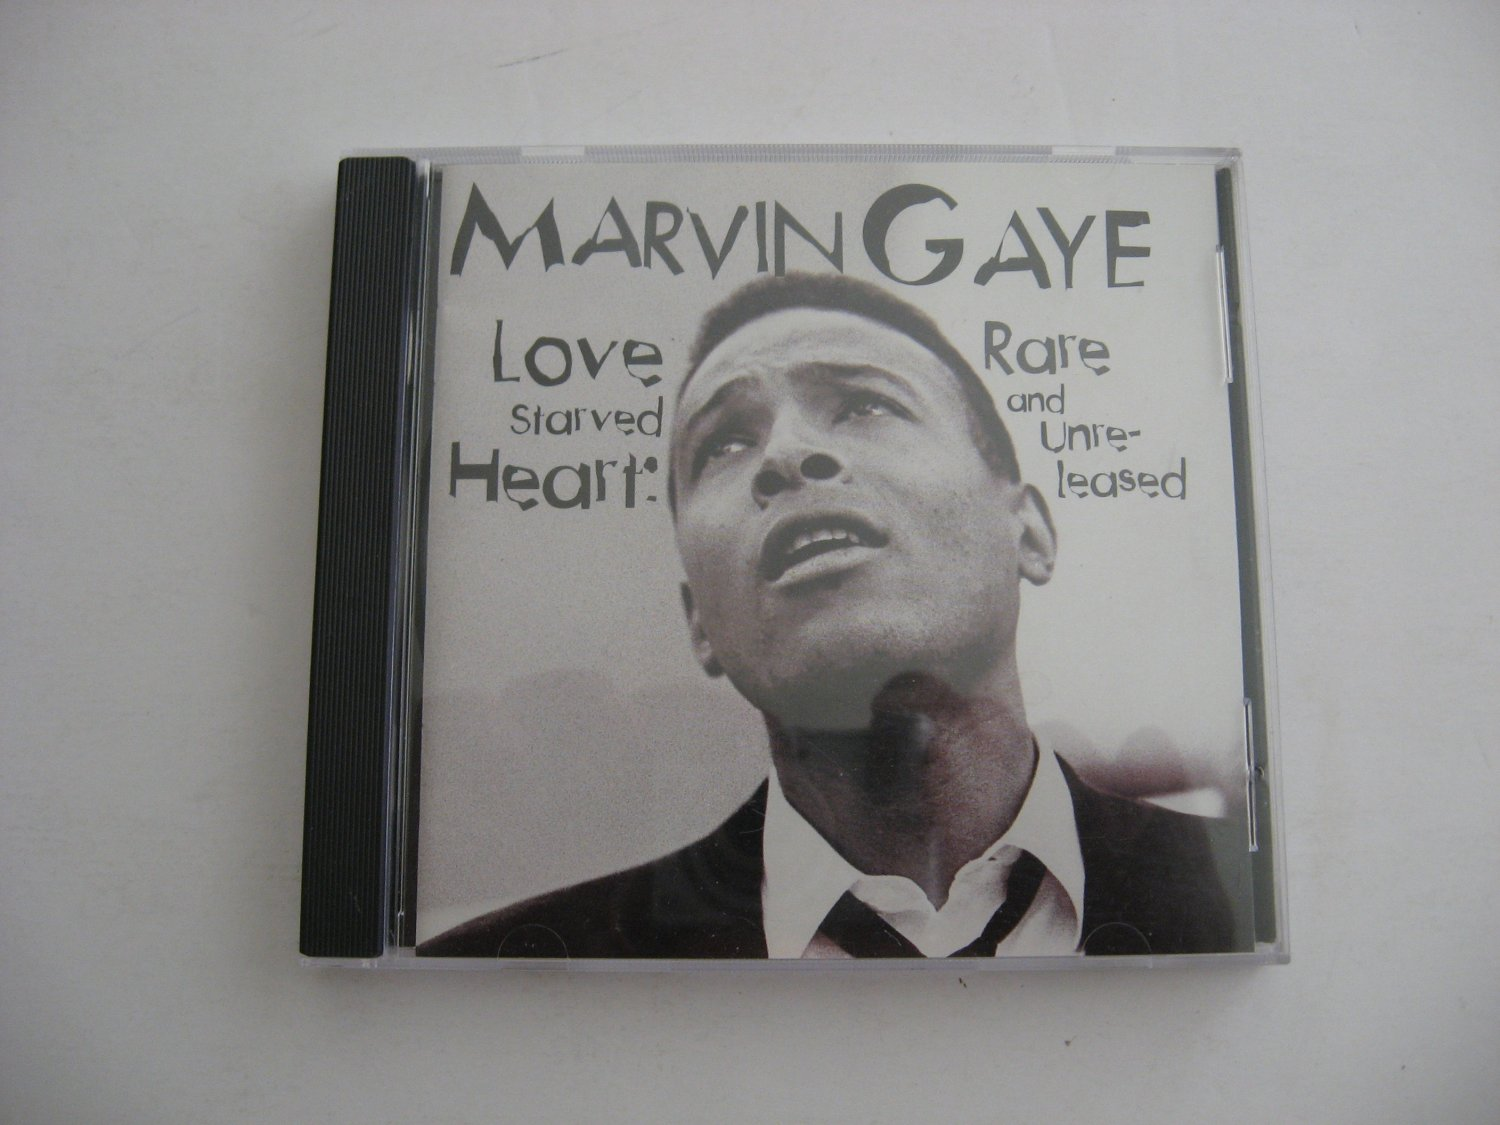 Marvin Gaye -  Love Starved Heart (Rare And Unreleased) - CIrca 1994   (CD)